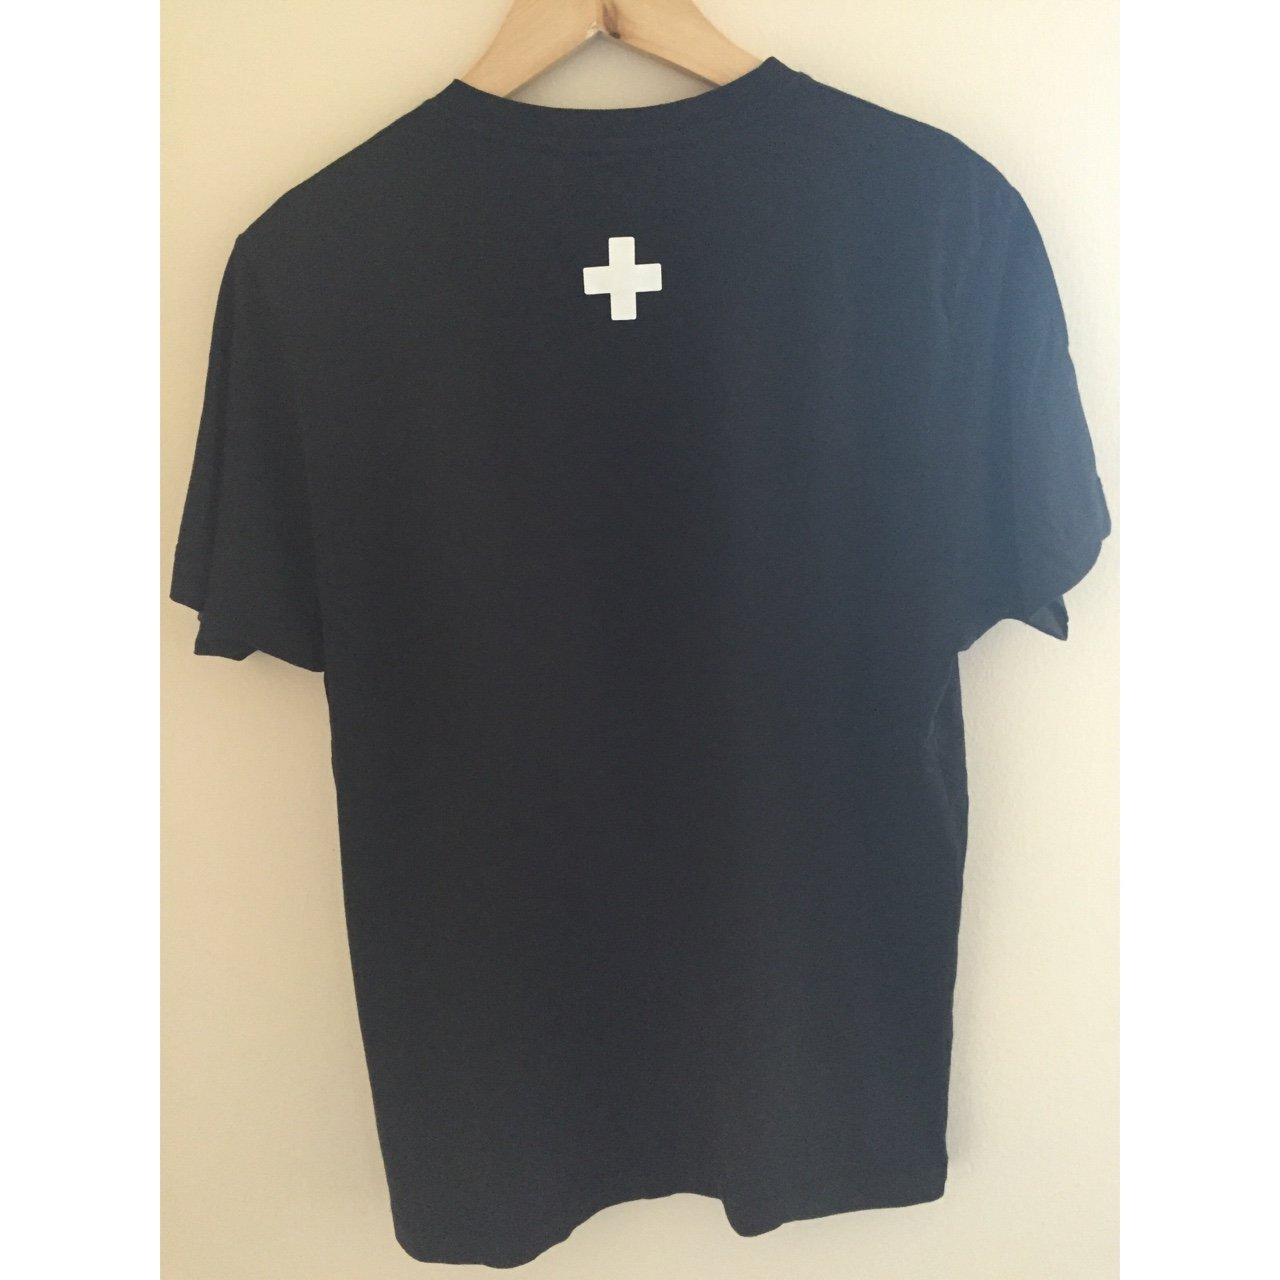 Places plus faces t shirt 2fa7aed64